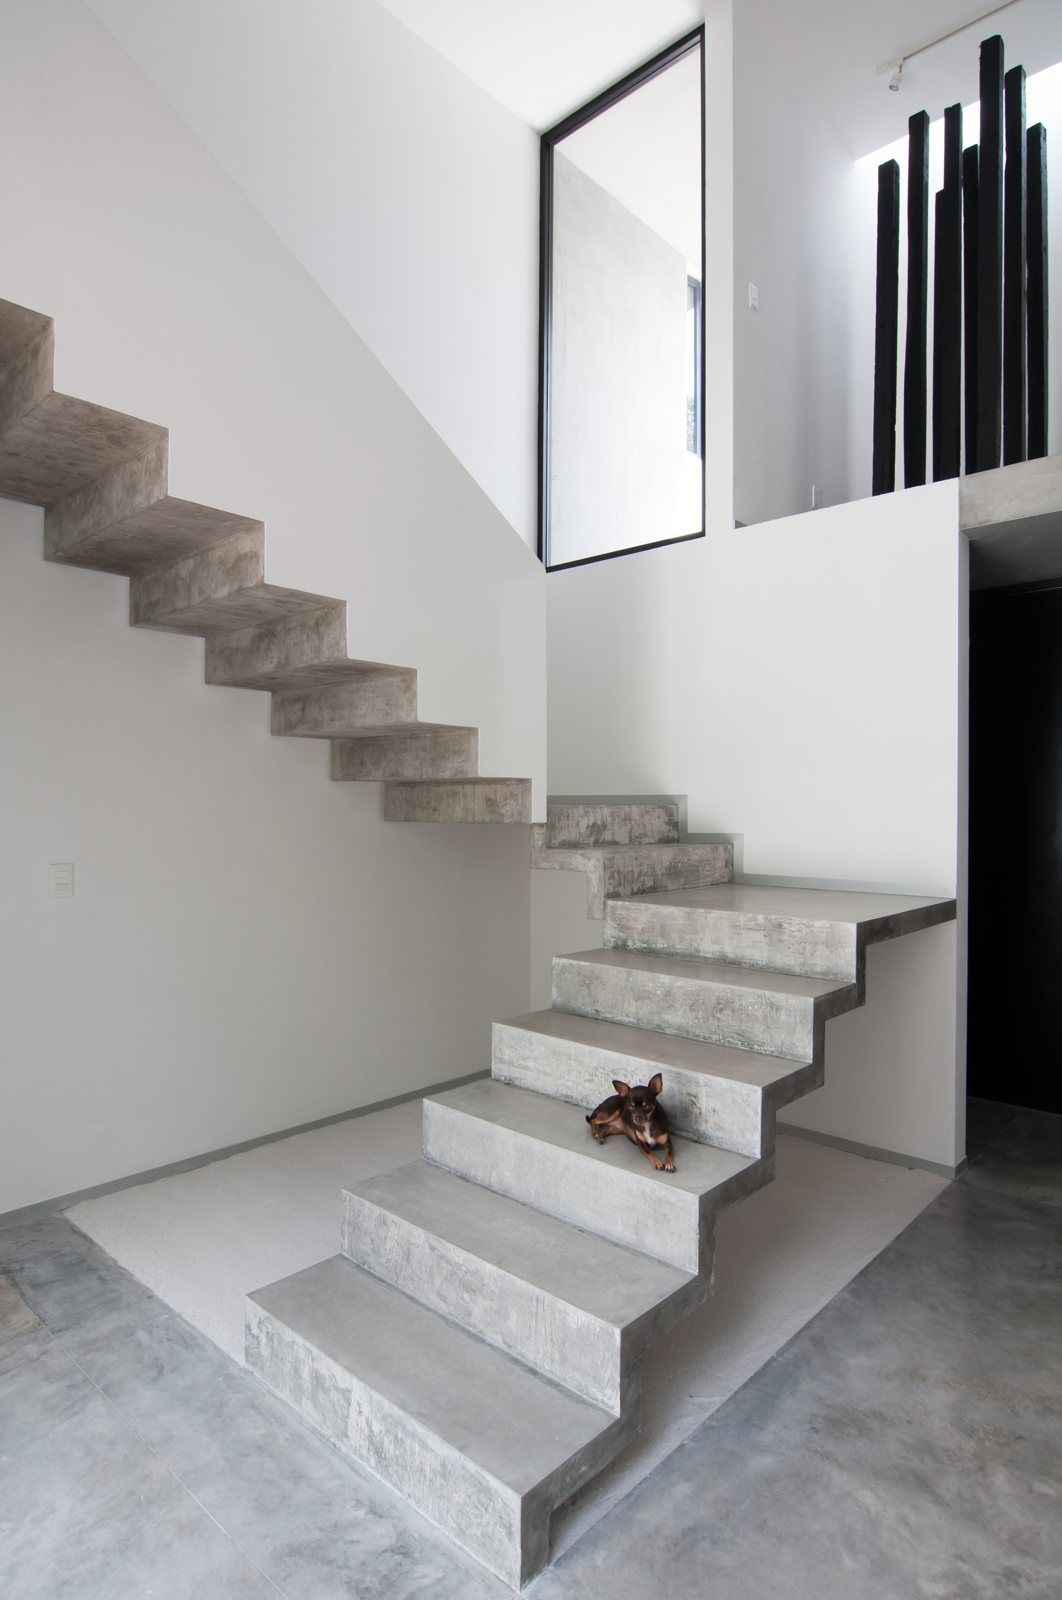 U Shaped Concrete Staircase Casa Garcias By Warm Architects Up Interiors Concrete Staircase Interior Stairs Staircase Design